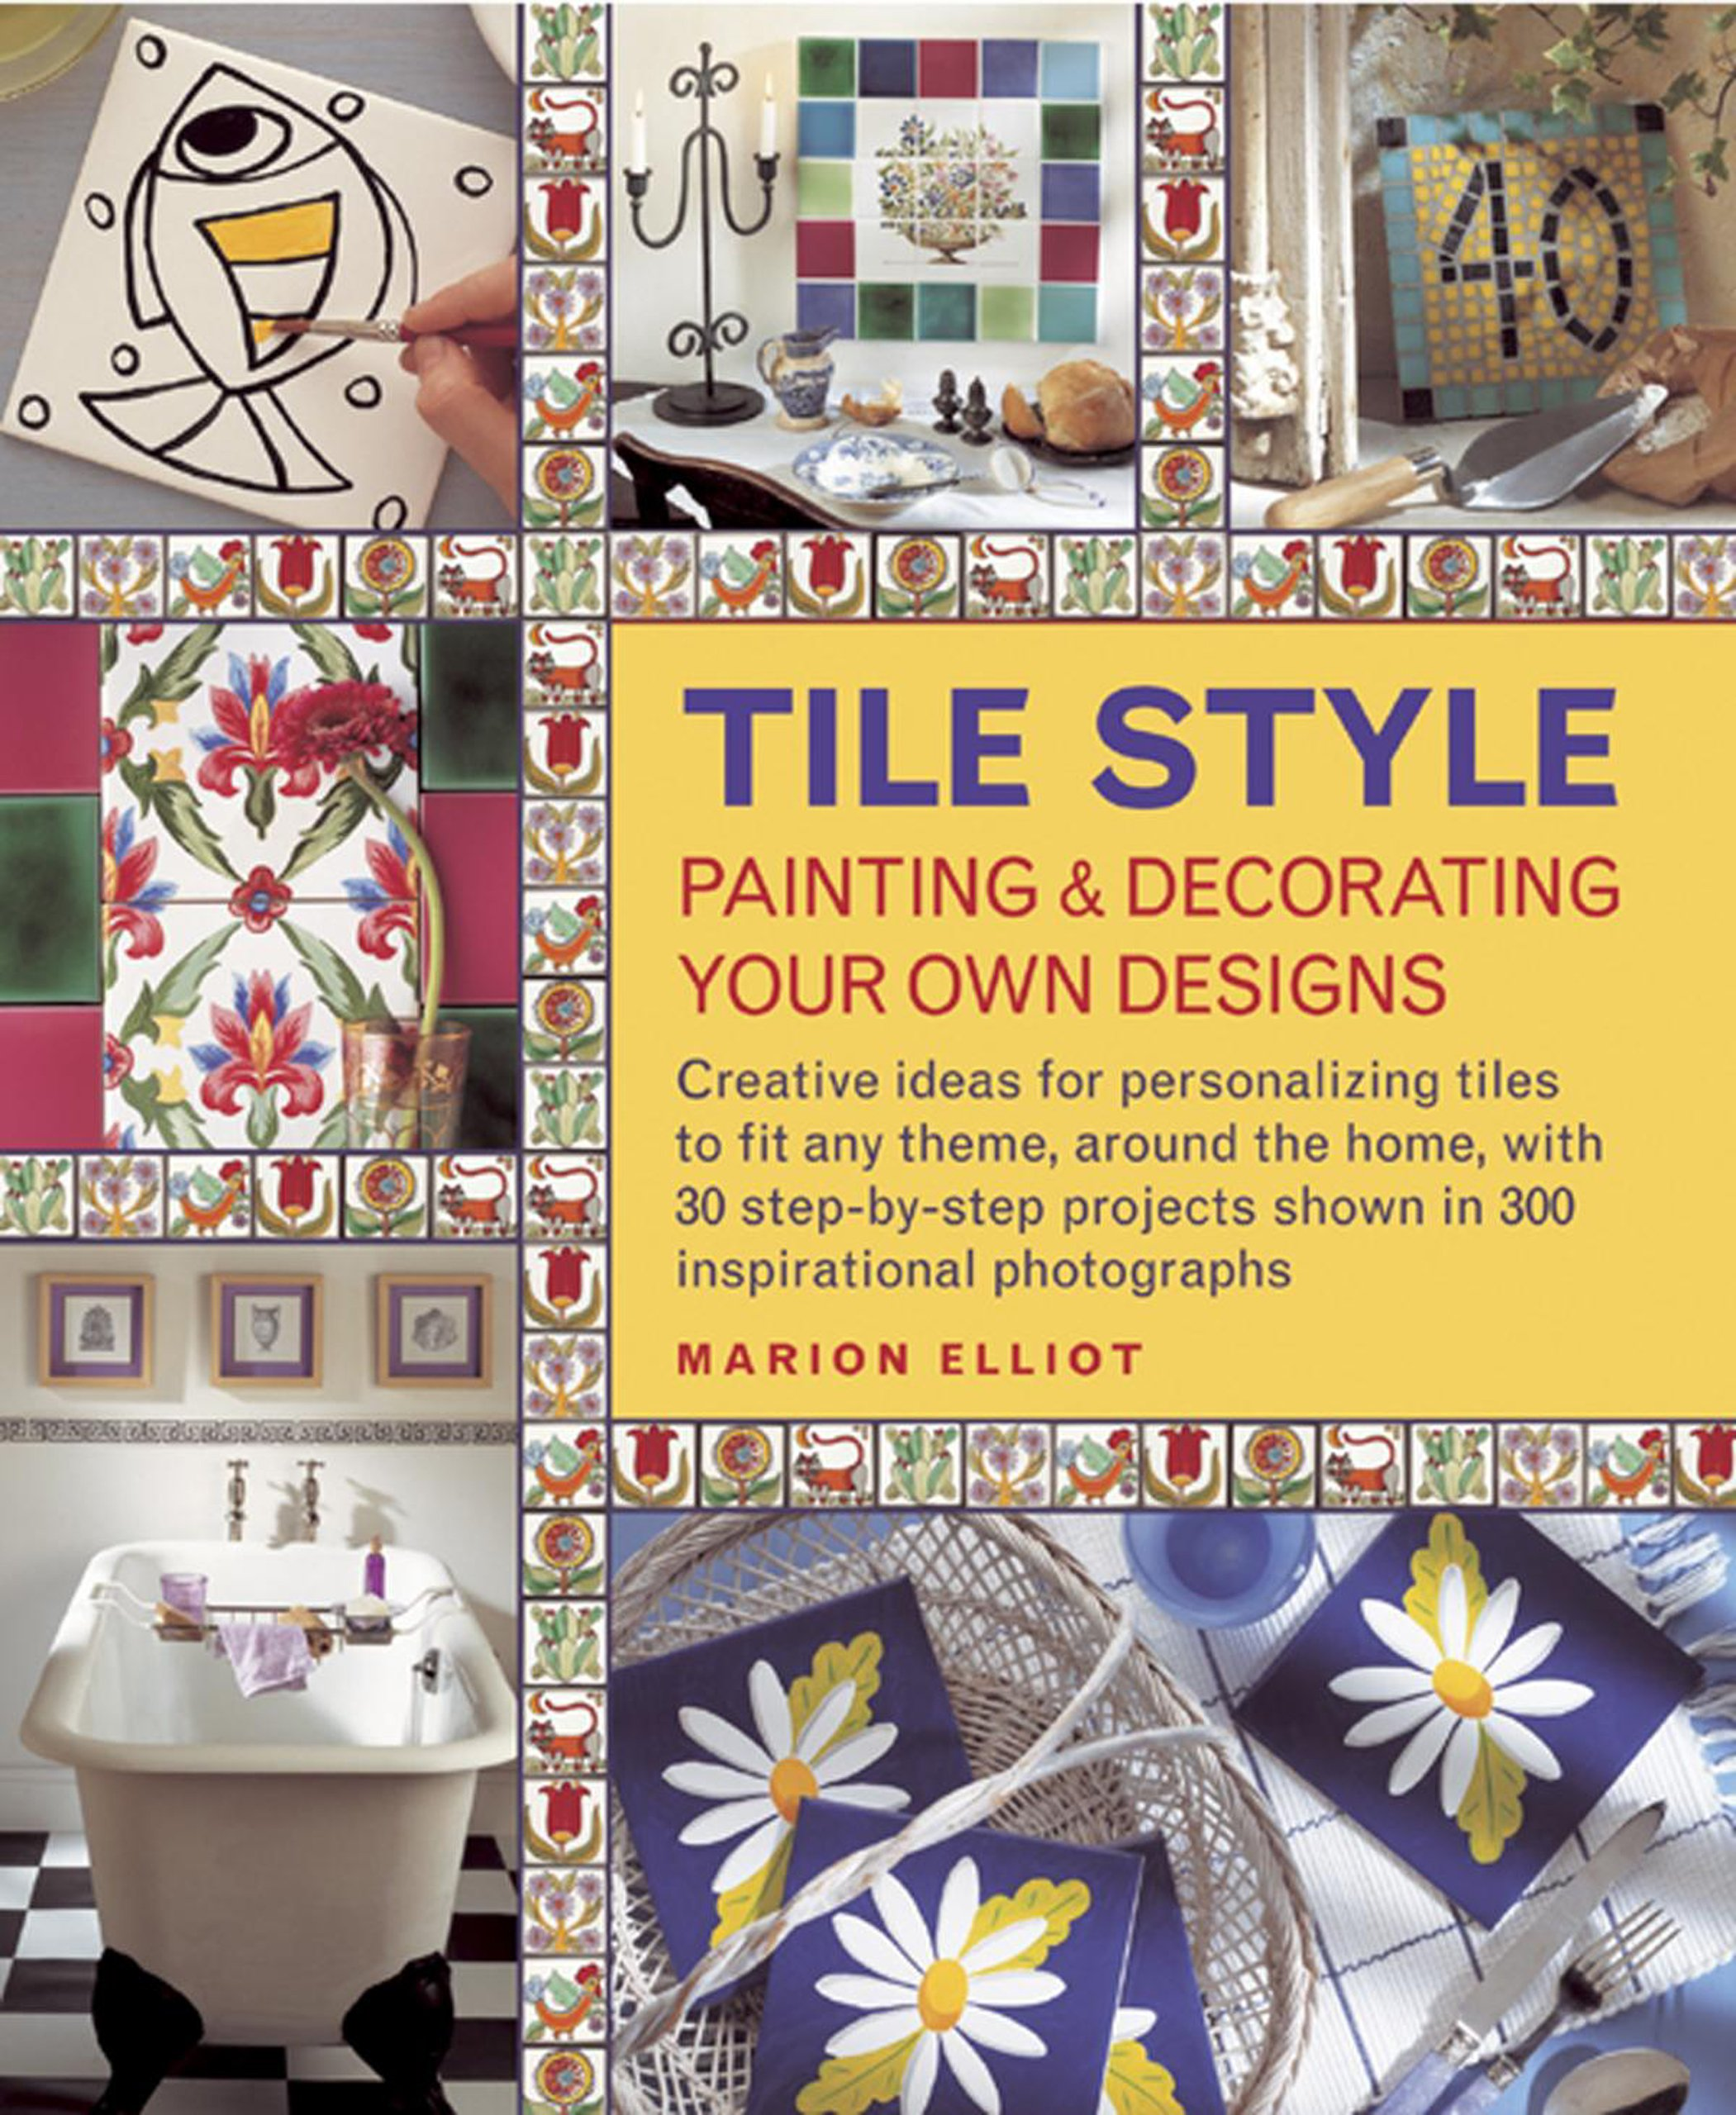 Tile Style: Painting & Decorating Your Own Designs: Creative ideas for personalizing tiles to fit any theme, around the home, with 30 step-by-step projects shown in 300 inspirational photographs